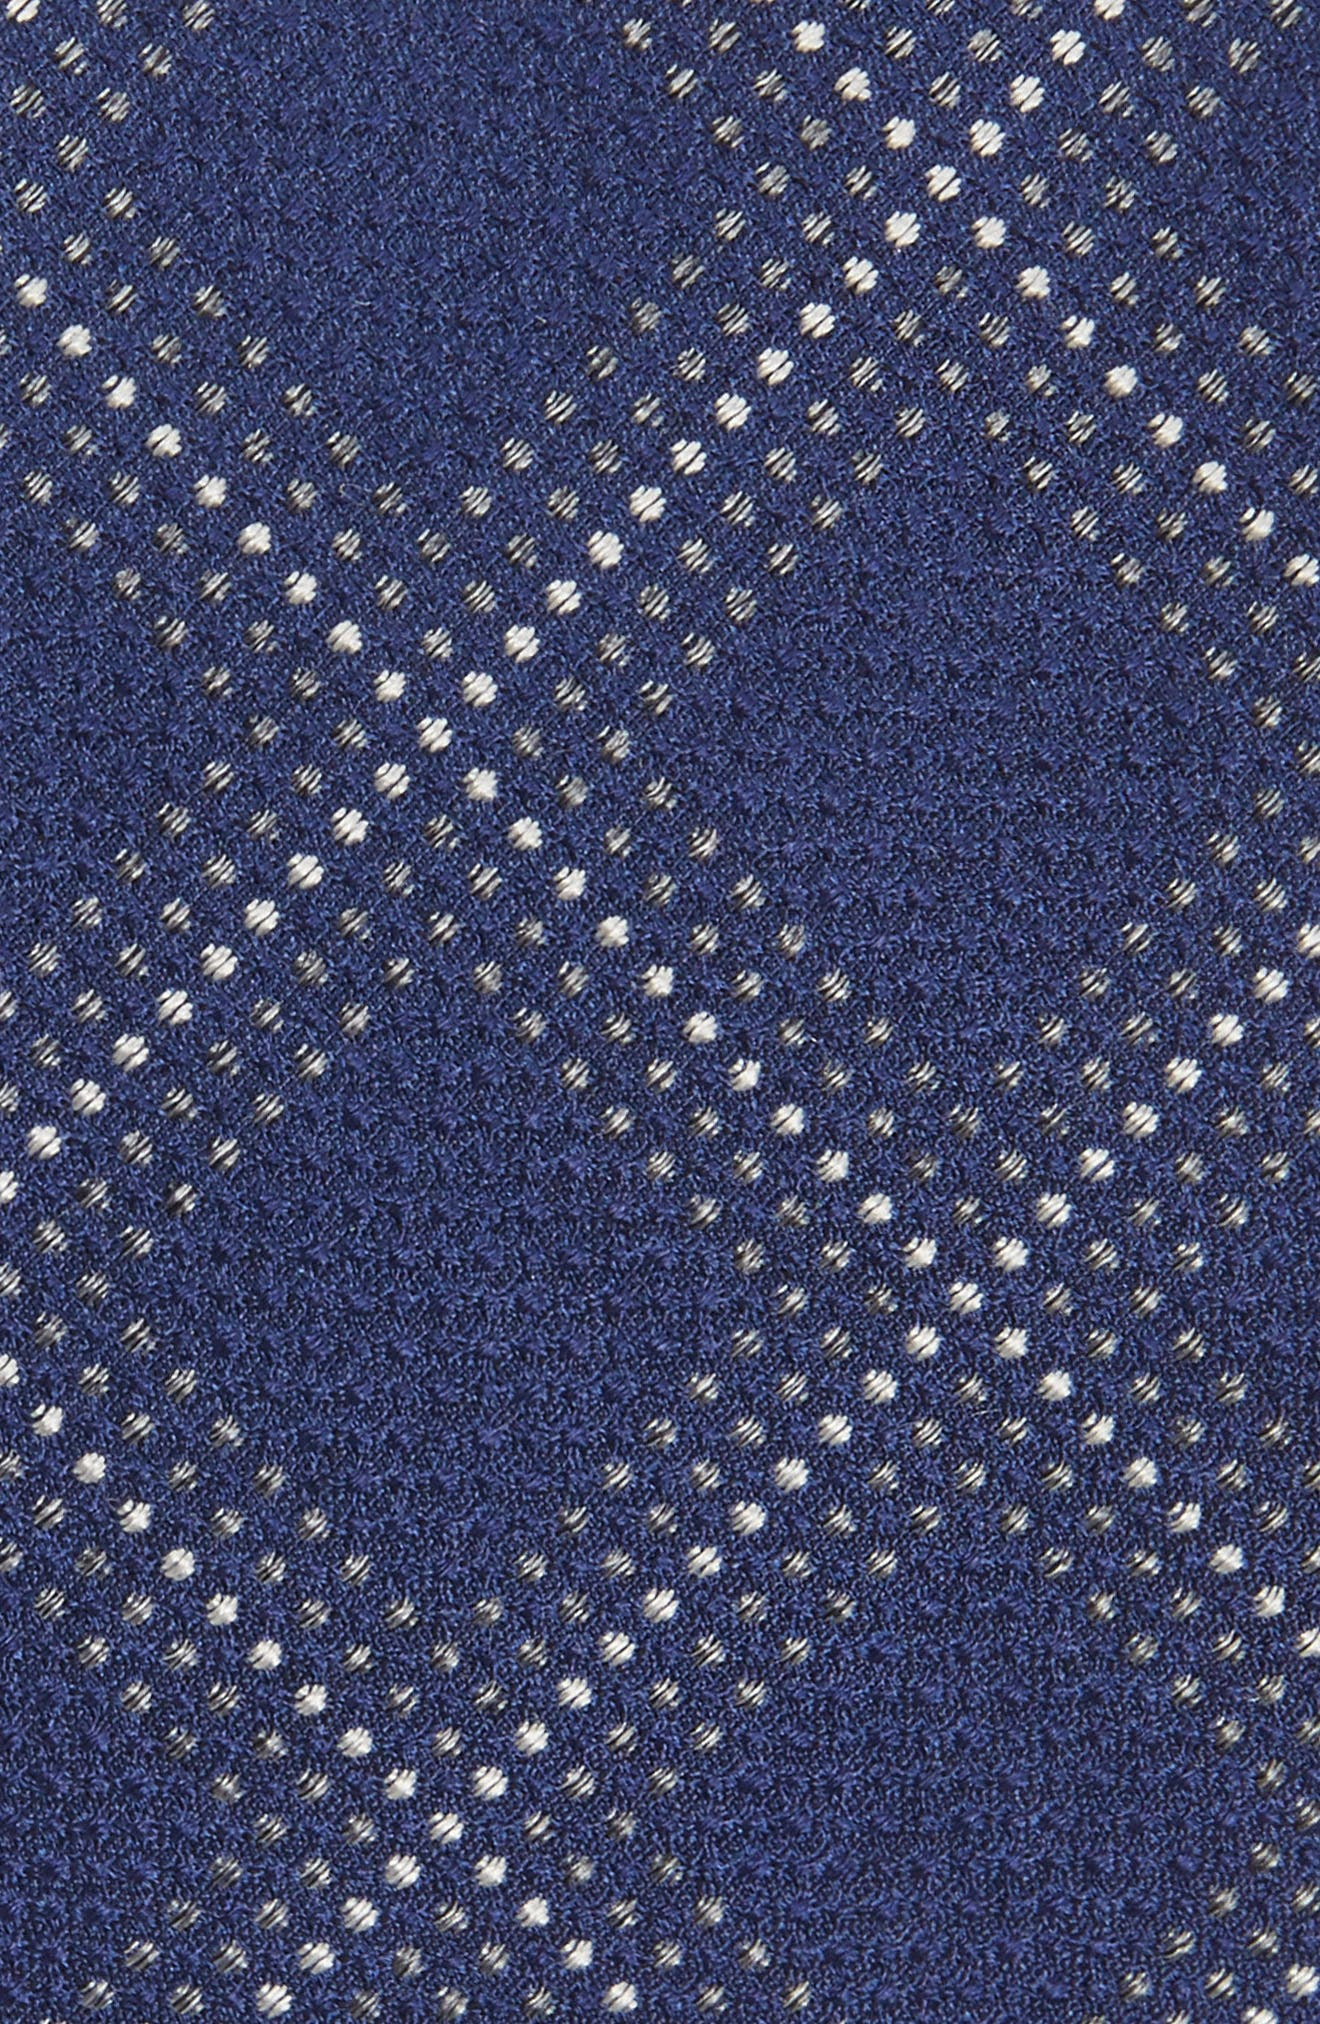 Grid Silk Blend Tie,                             Alternate thumbnail 2, color,                             410